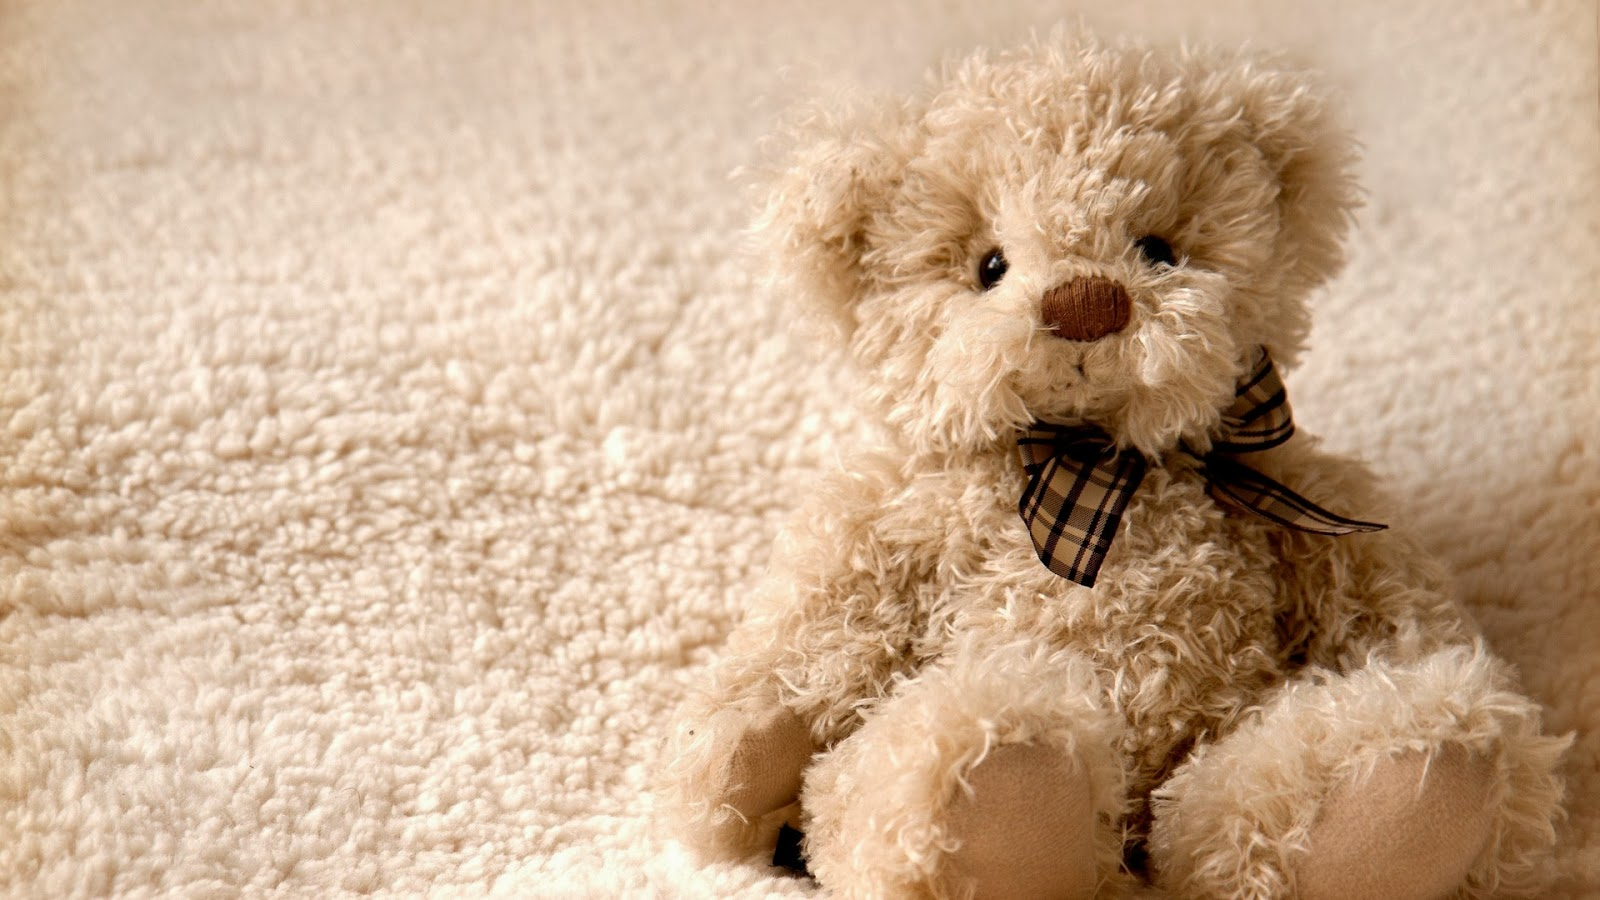 Alone The Teddy Bear Wallpaper HD